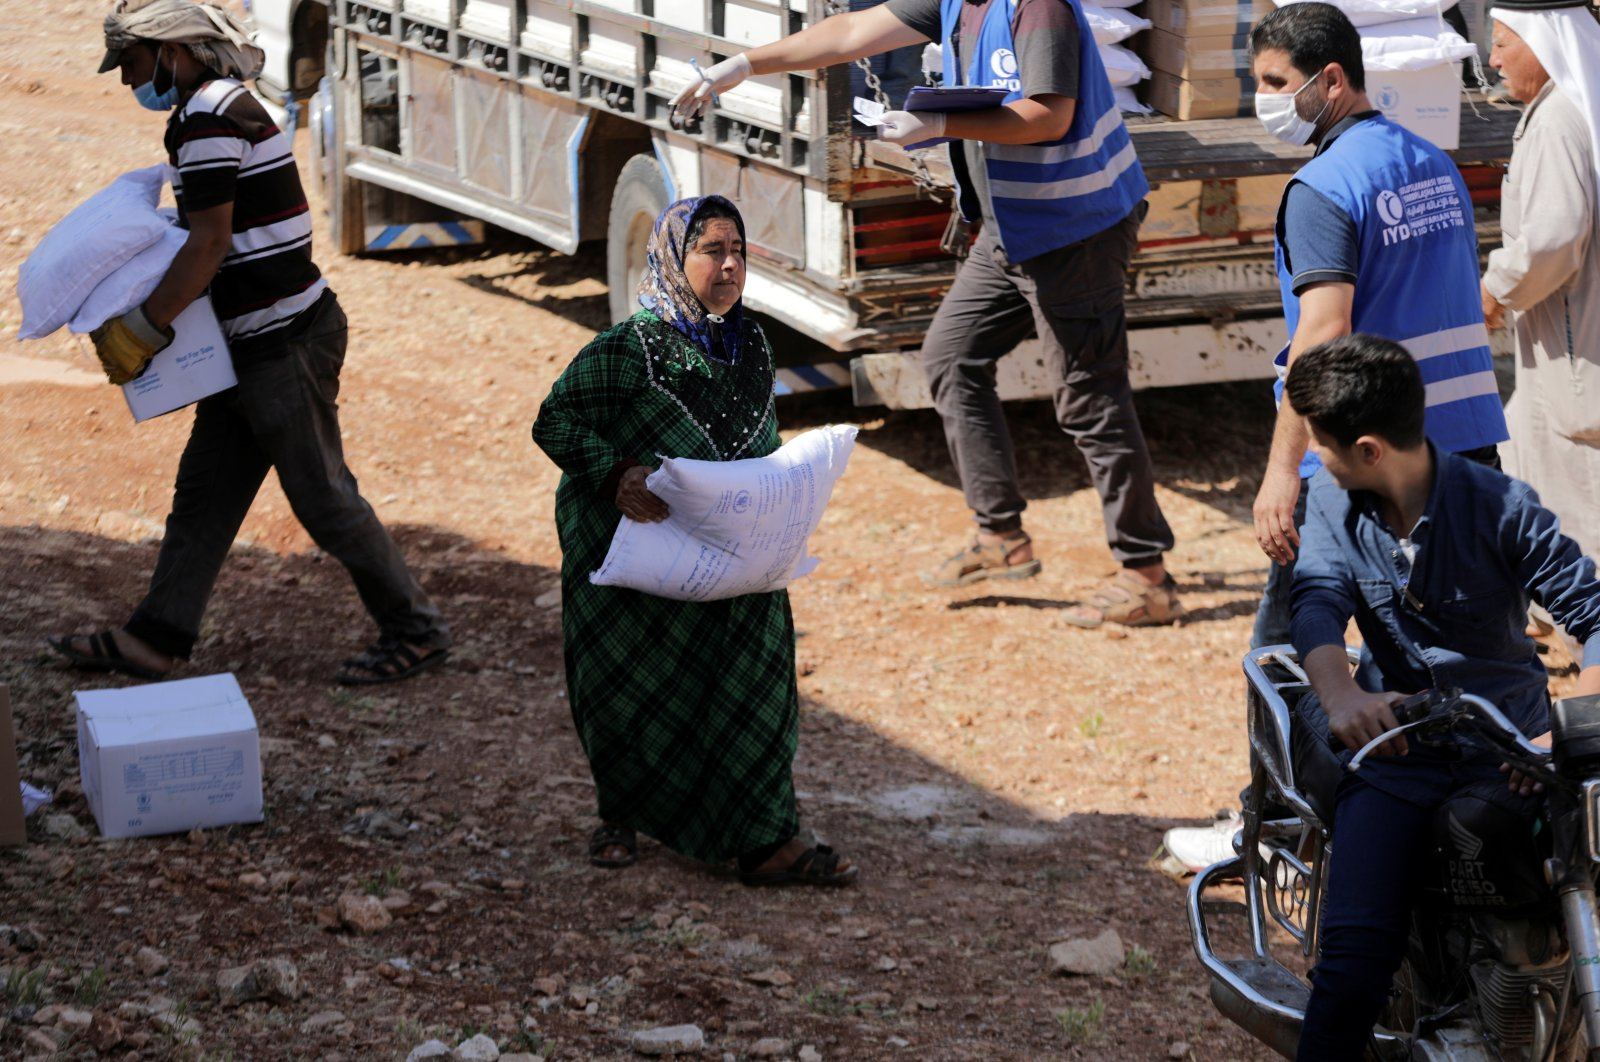 An internally displaced Syrian woman walks as she holds a bag of humanitarian aid in the opposition-held Idlib, Syria, June 9, 2021. (Reuters Photo)